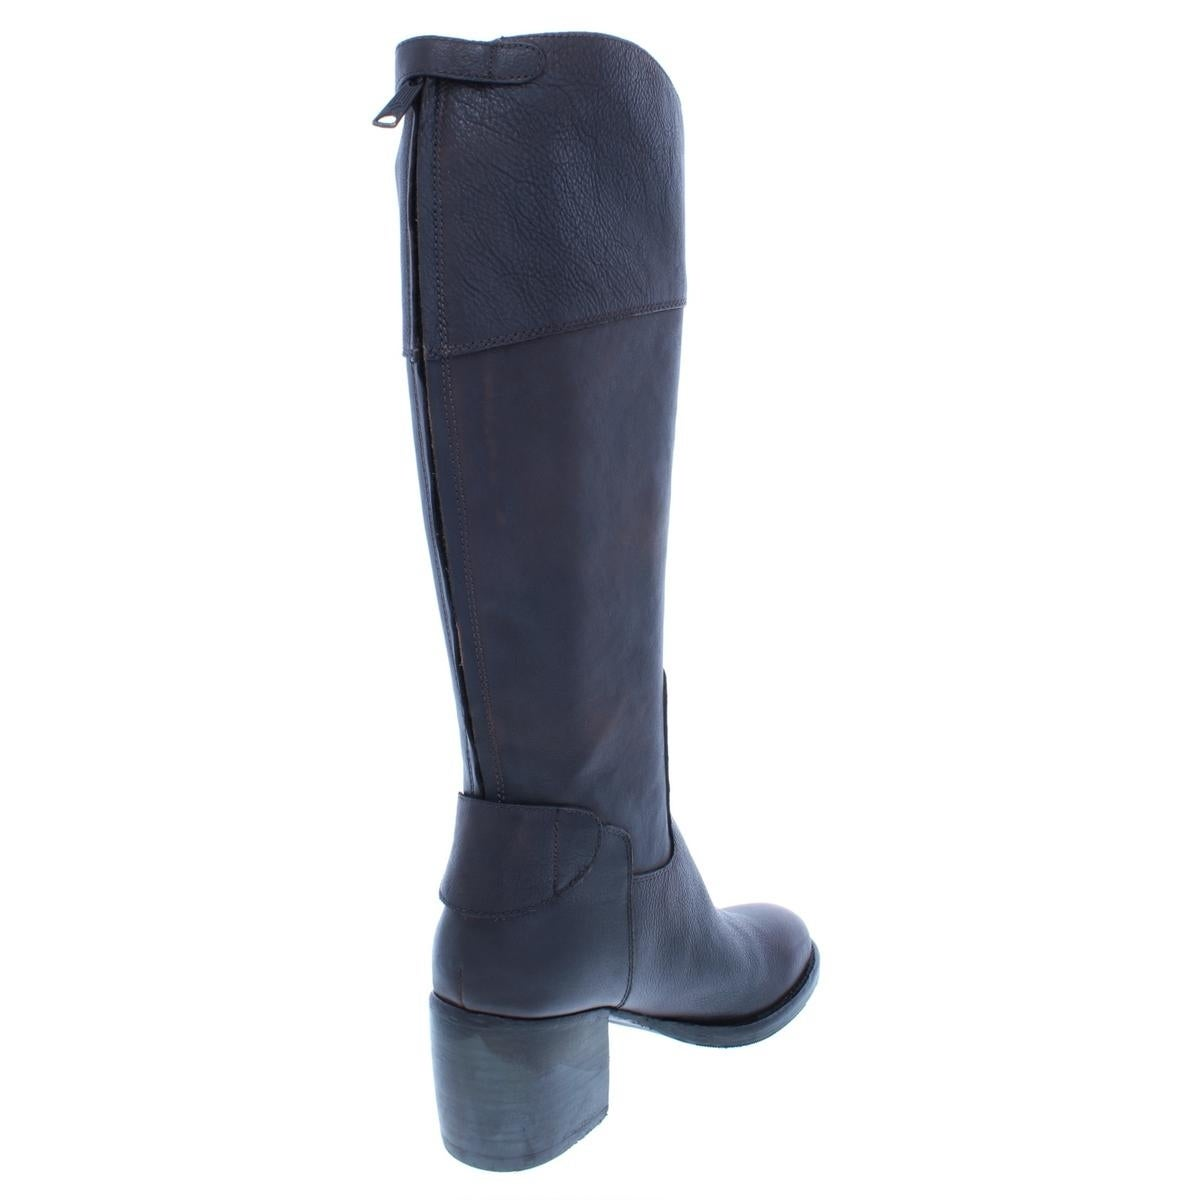 b51f600f756 Patricia Nash Womens Loretta Riding Boots Leather Over-The-Knee